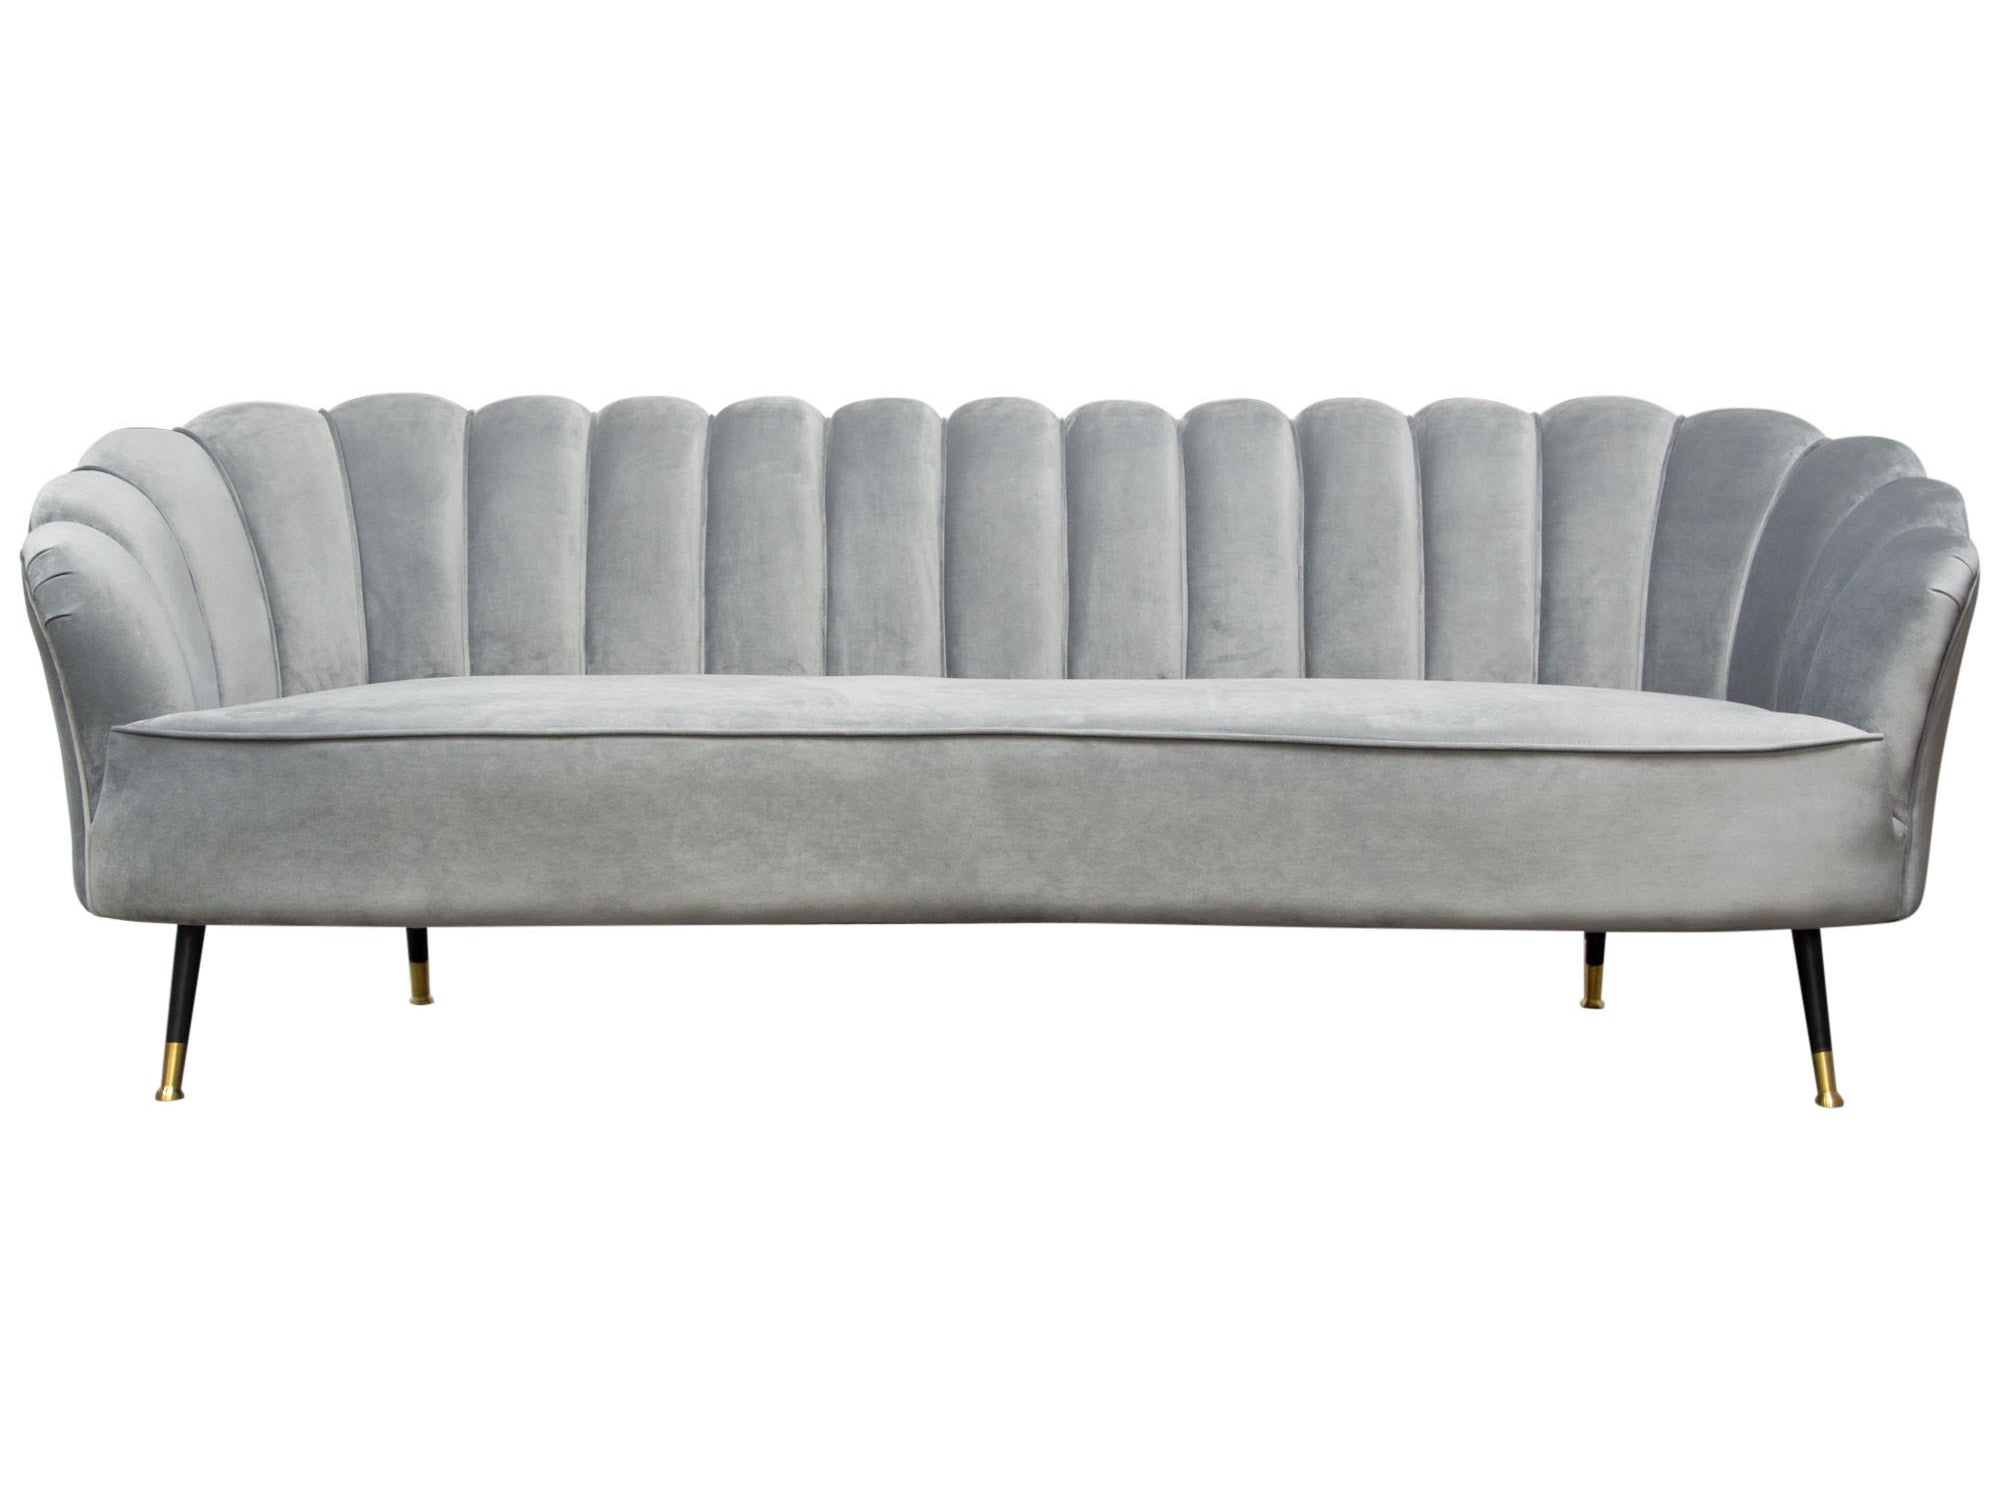 CELESTE SOFA - PLATINUM GREY